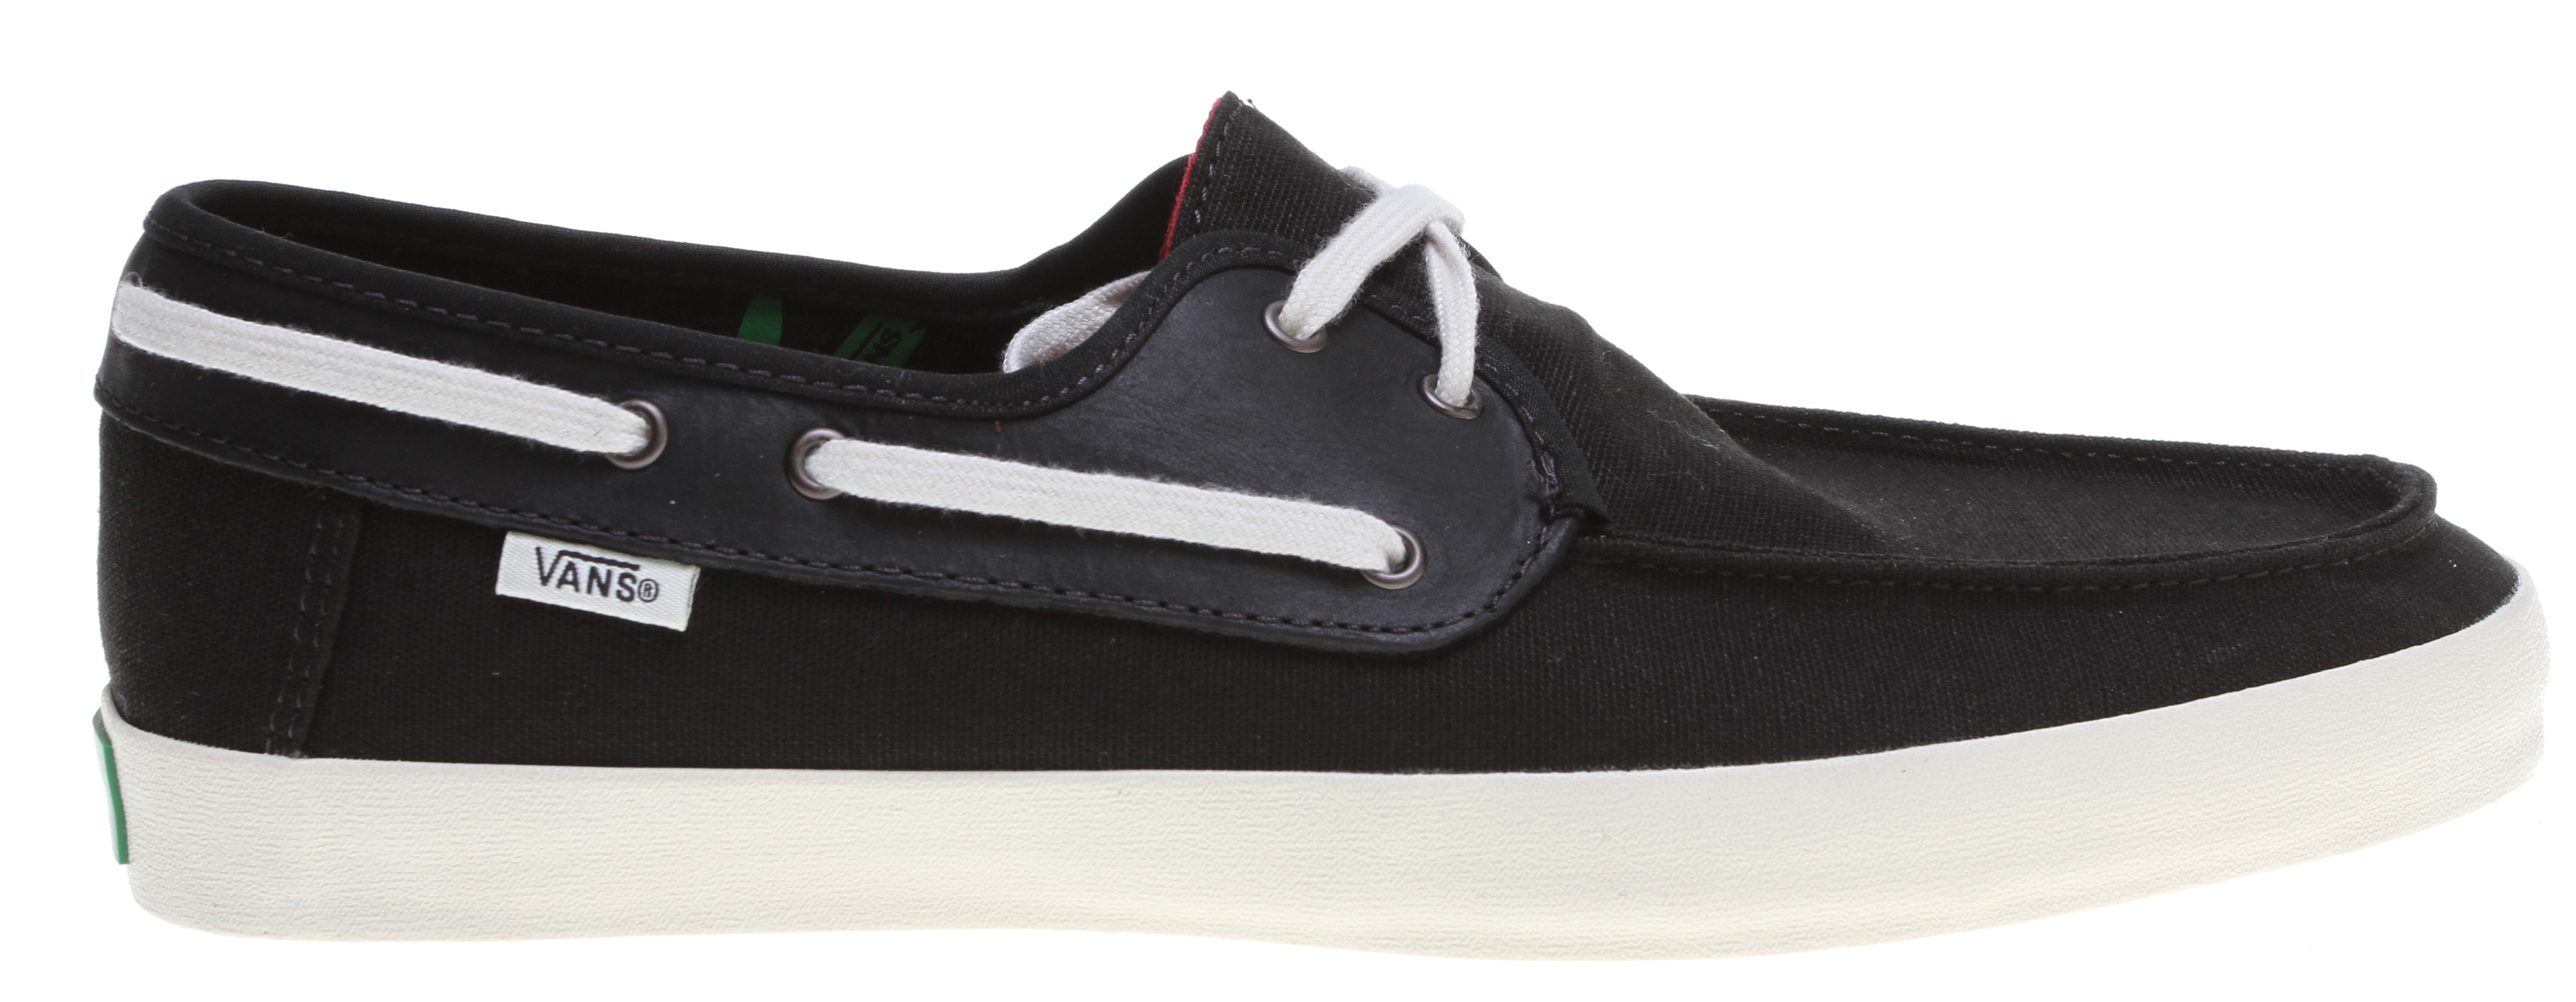 Skateboard Key Features of the Vans Chauffeur Shoes: 100% natural hemp or canvas uppers, with leather or suede details Removable & washable super comfy vanslite footbeds Ultra-flexible vulcanized gum rubber outsole Made with water-based inks and glues classic fit style - $62.00